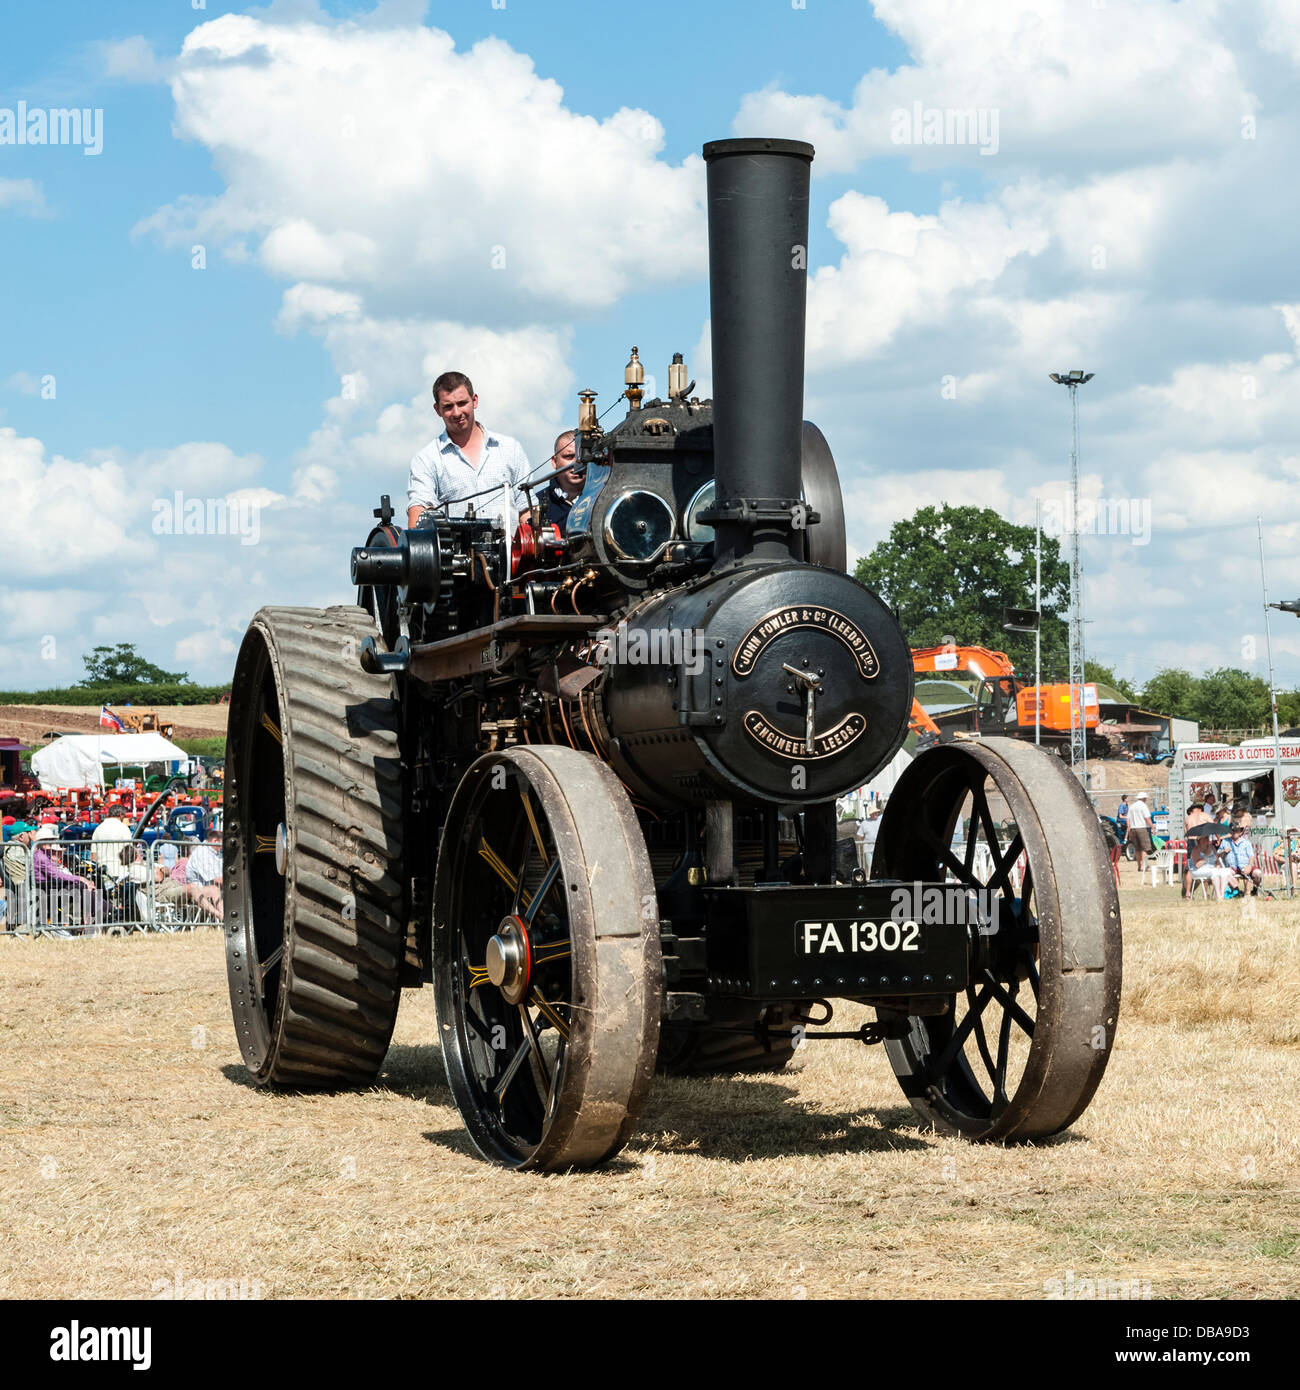 Fowler traction engine FA 1302 at Welland steam rally, near the Malvern Hills, Worcestershire, UK. - Stock Image